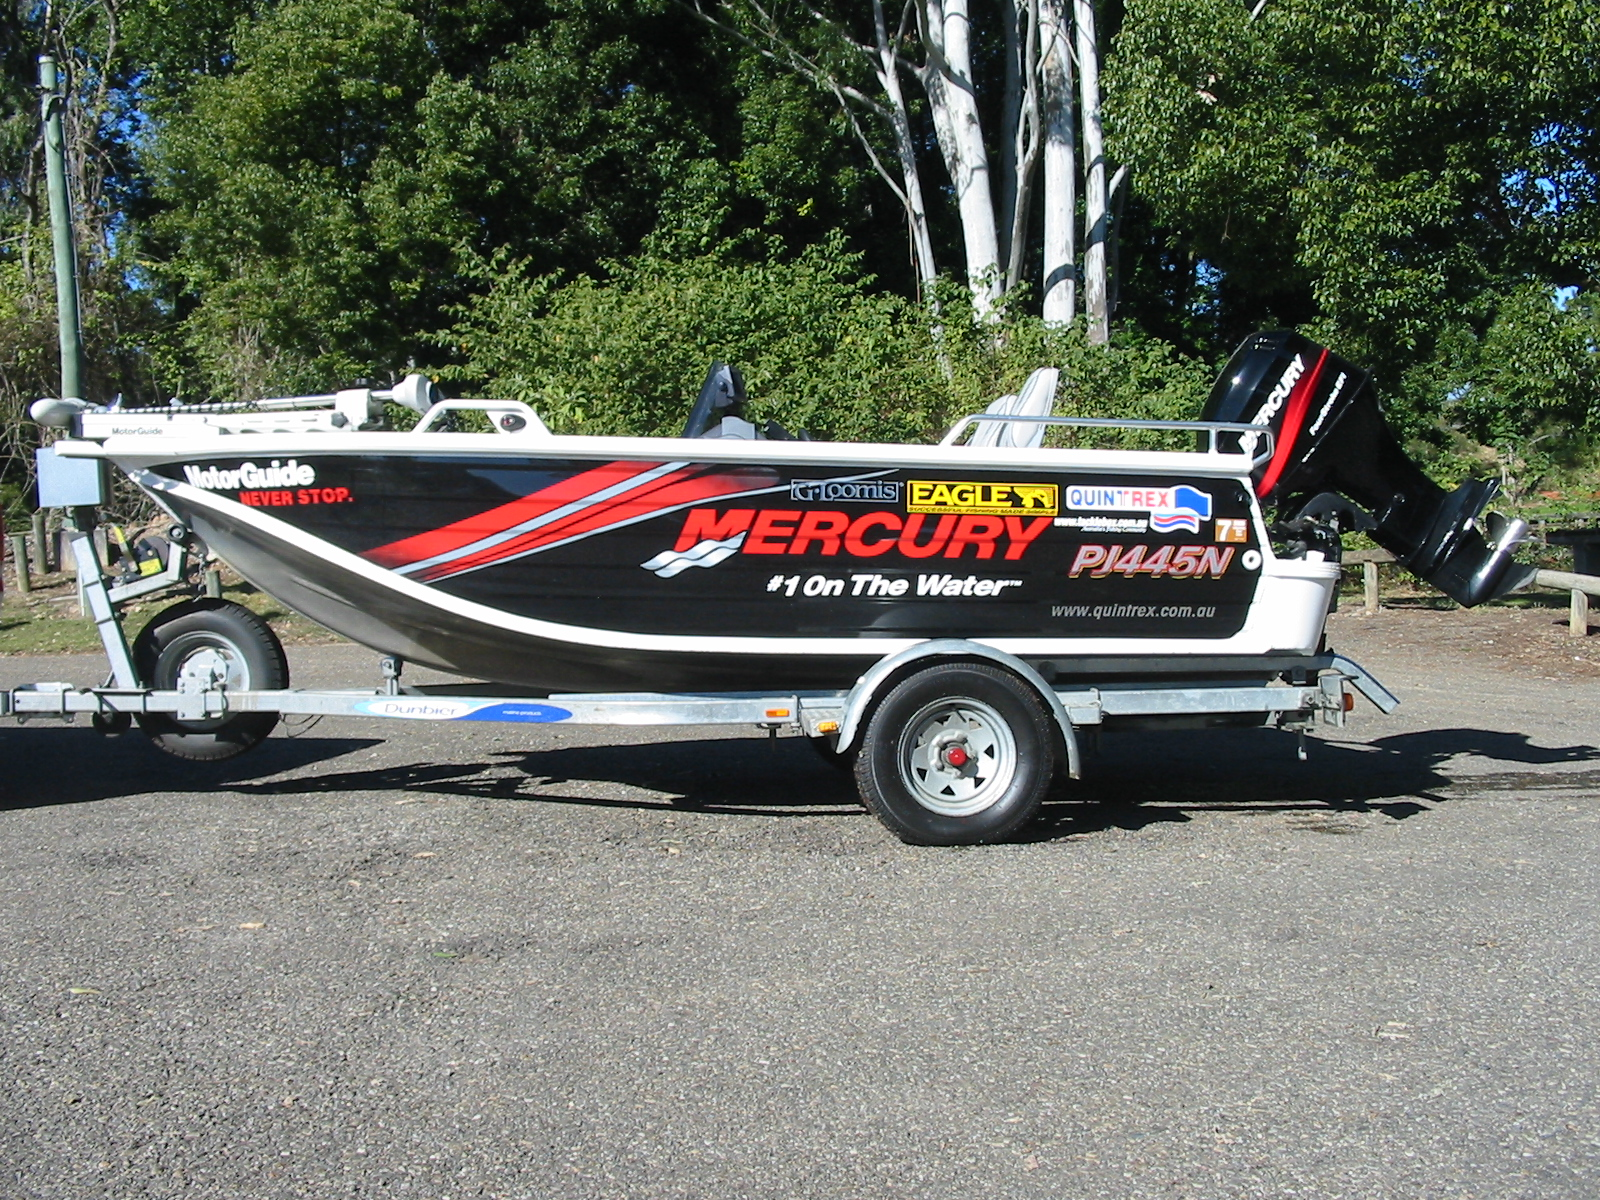 60 HP Mercury 4 stroke,